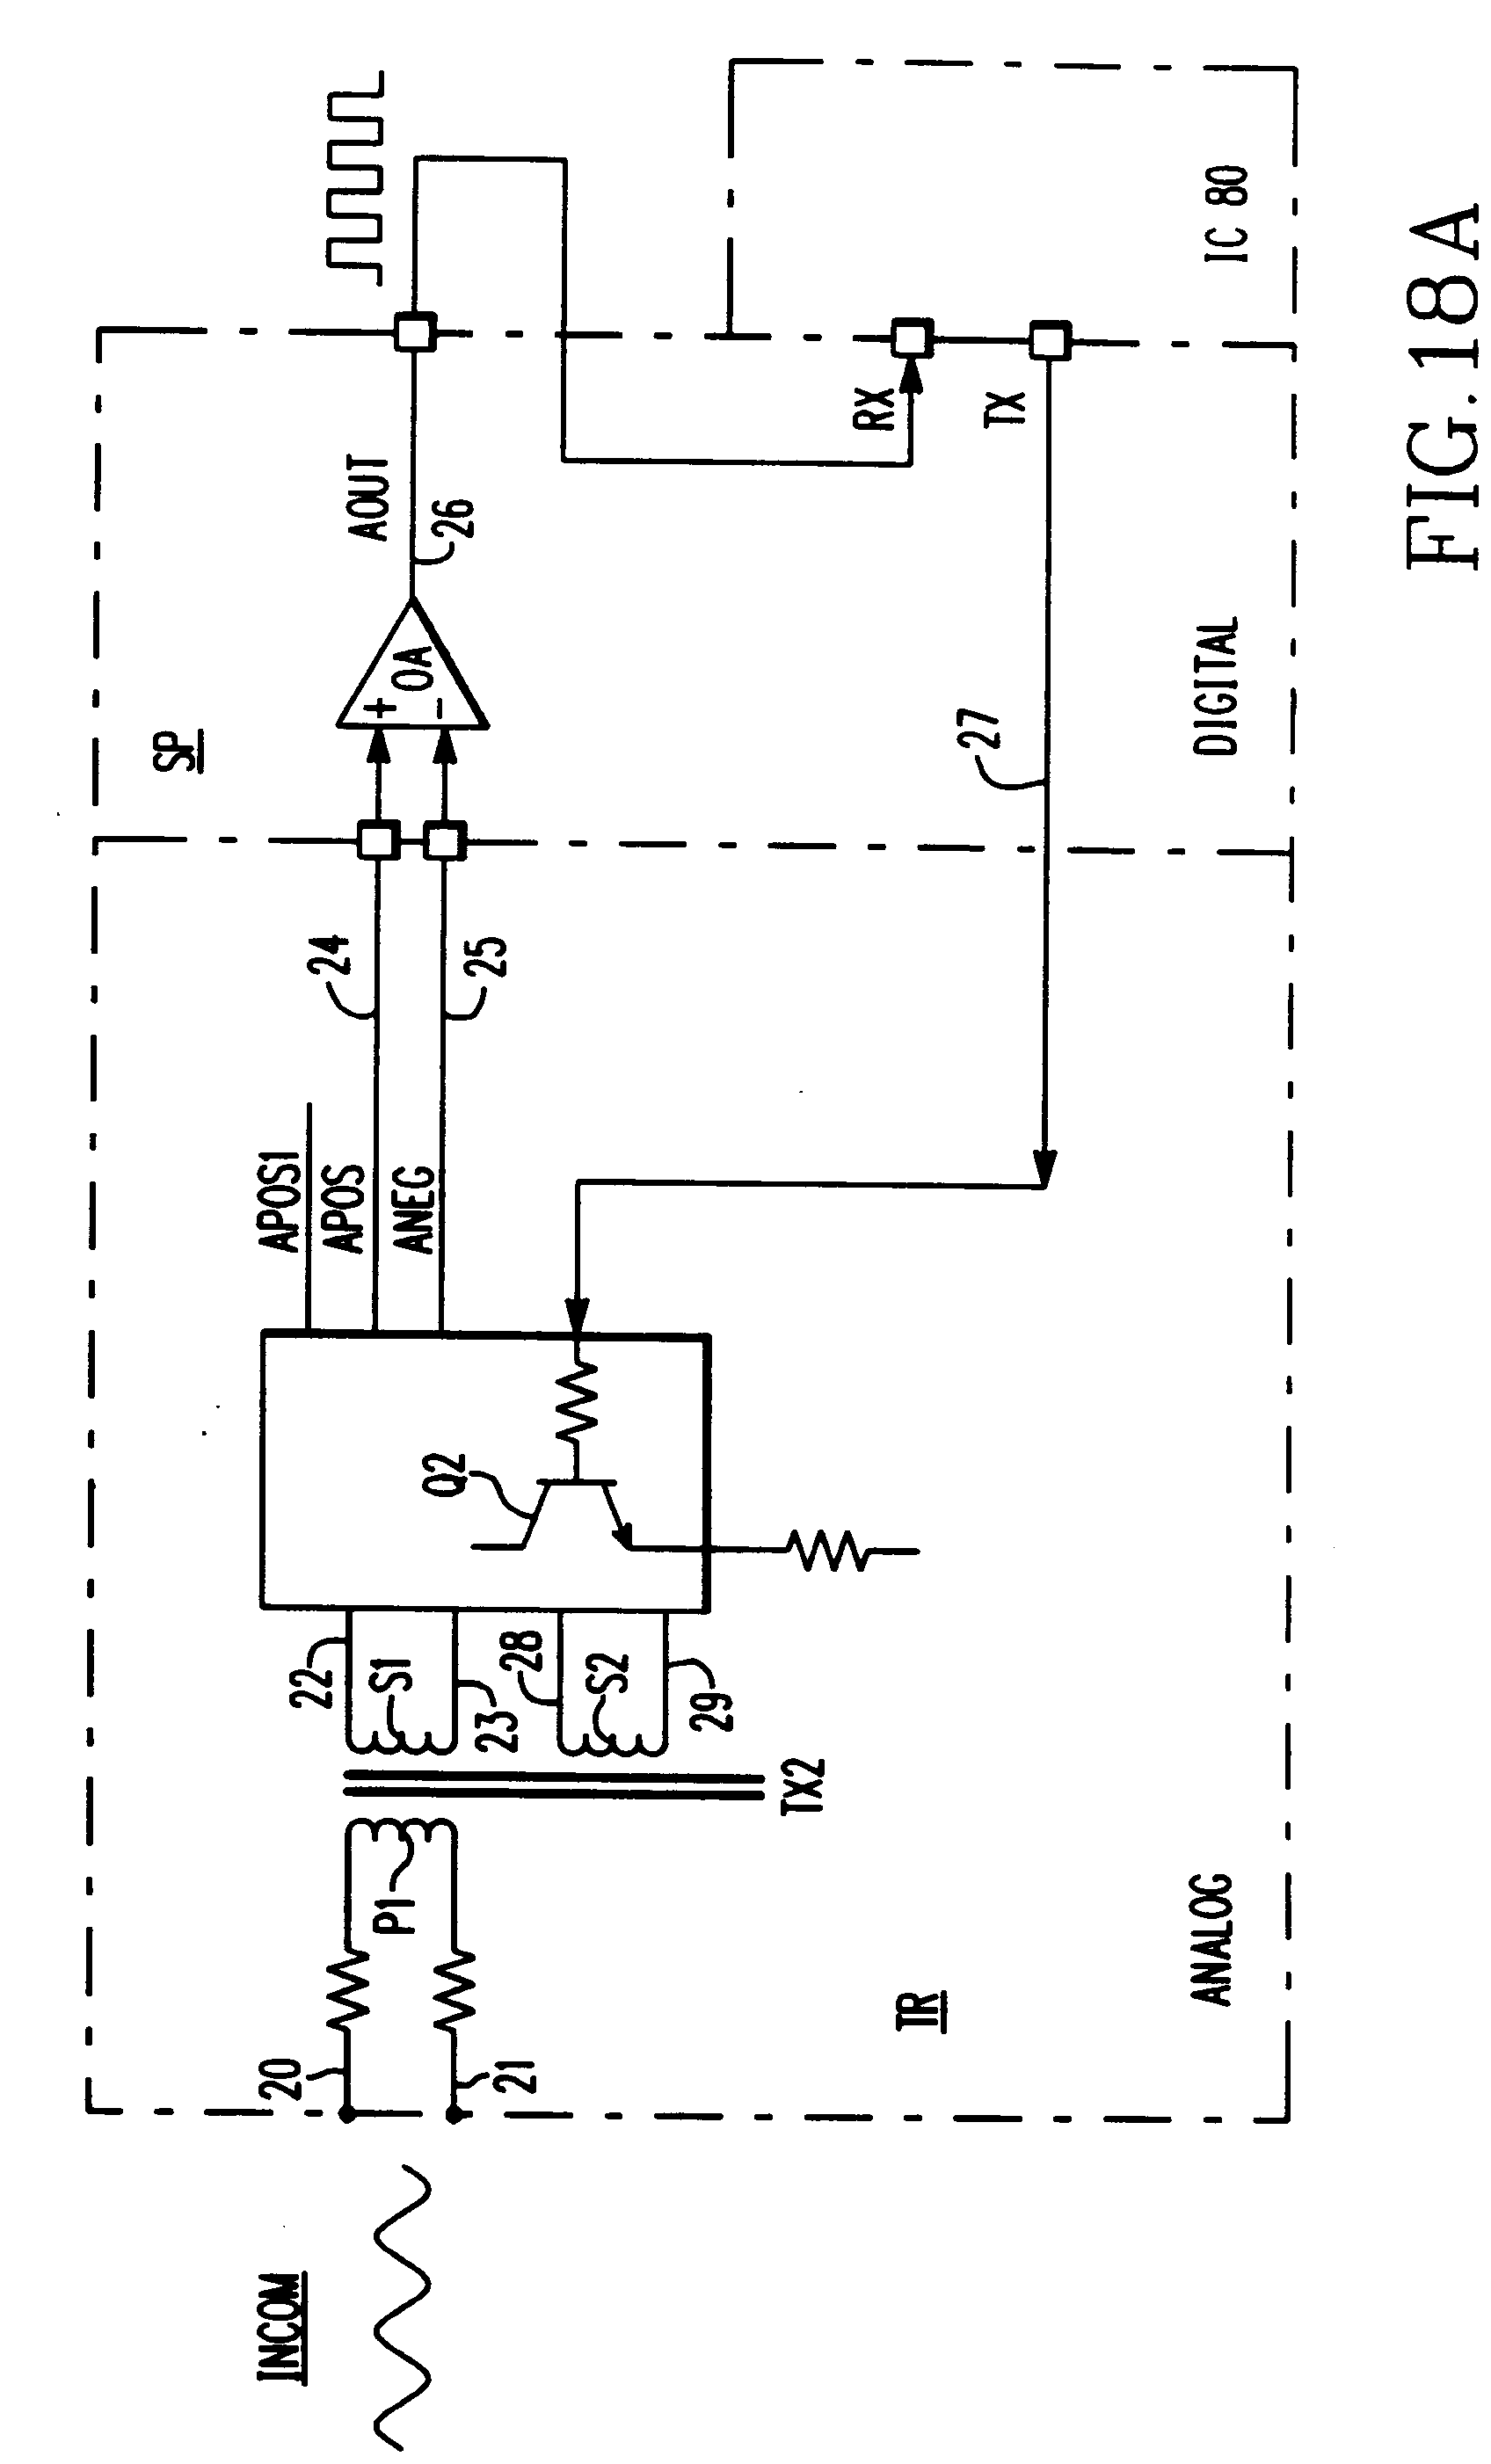 US20110310533 besides Search together with US8254089 in addition Electrical additionally Reset Fuse Box Uk. on main distribution panelboard